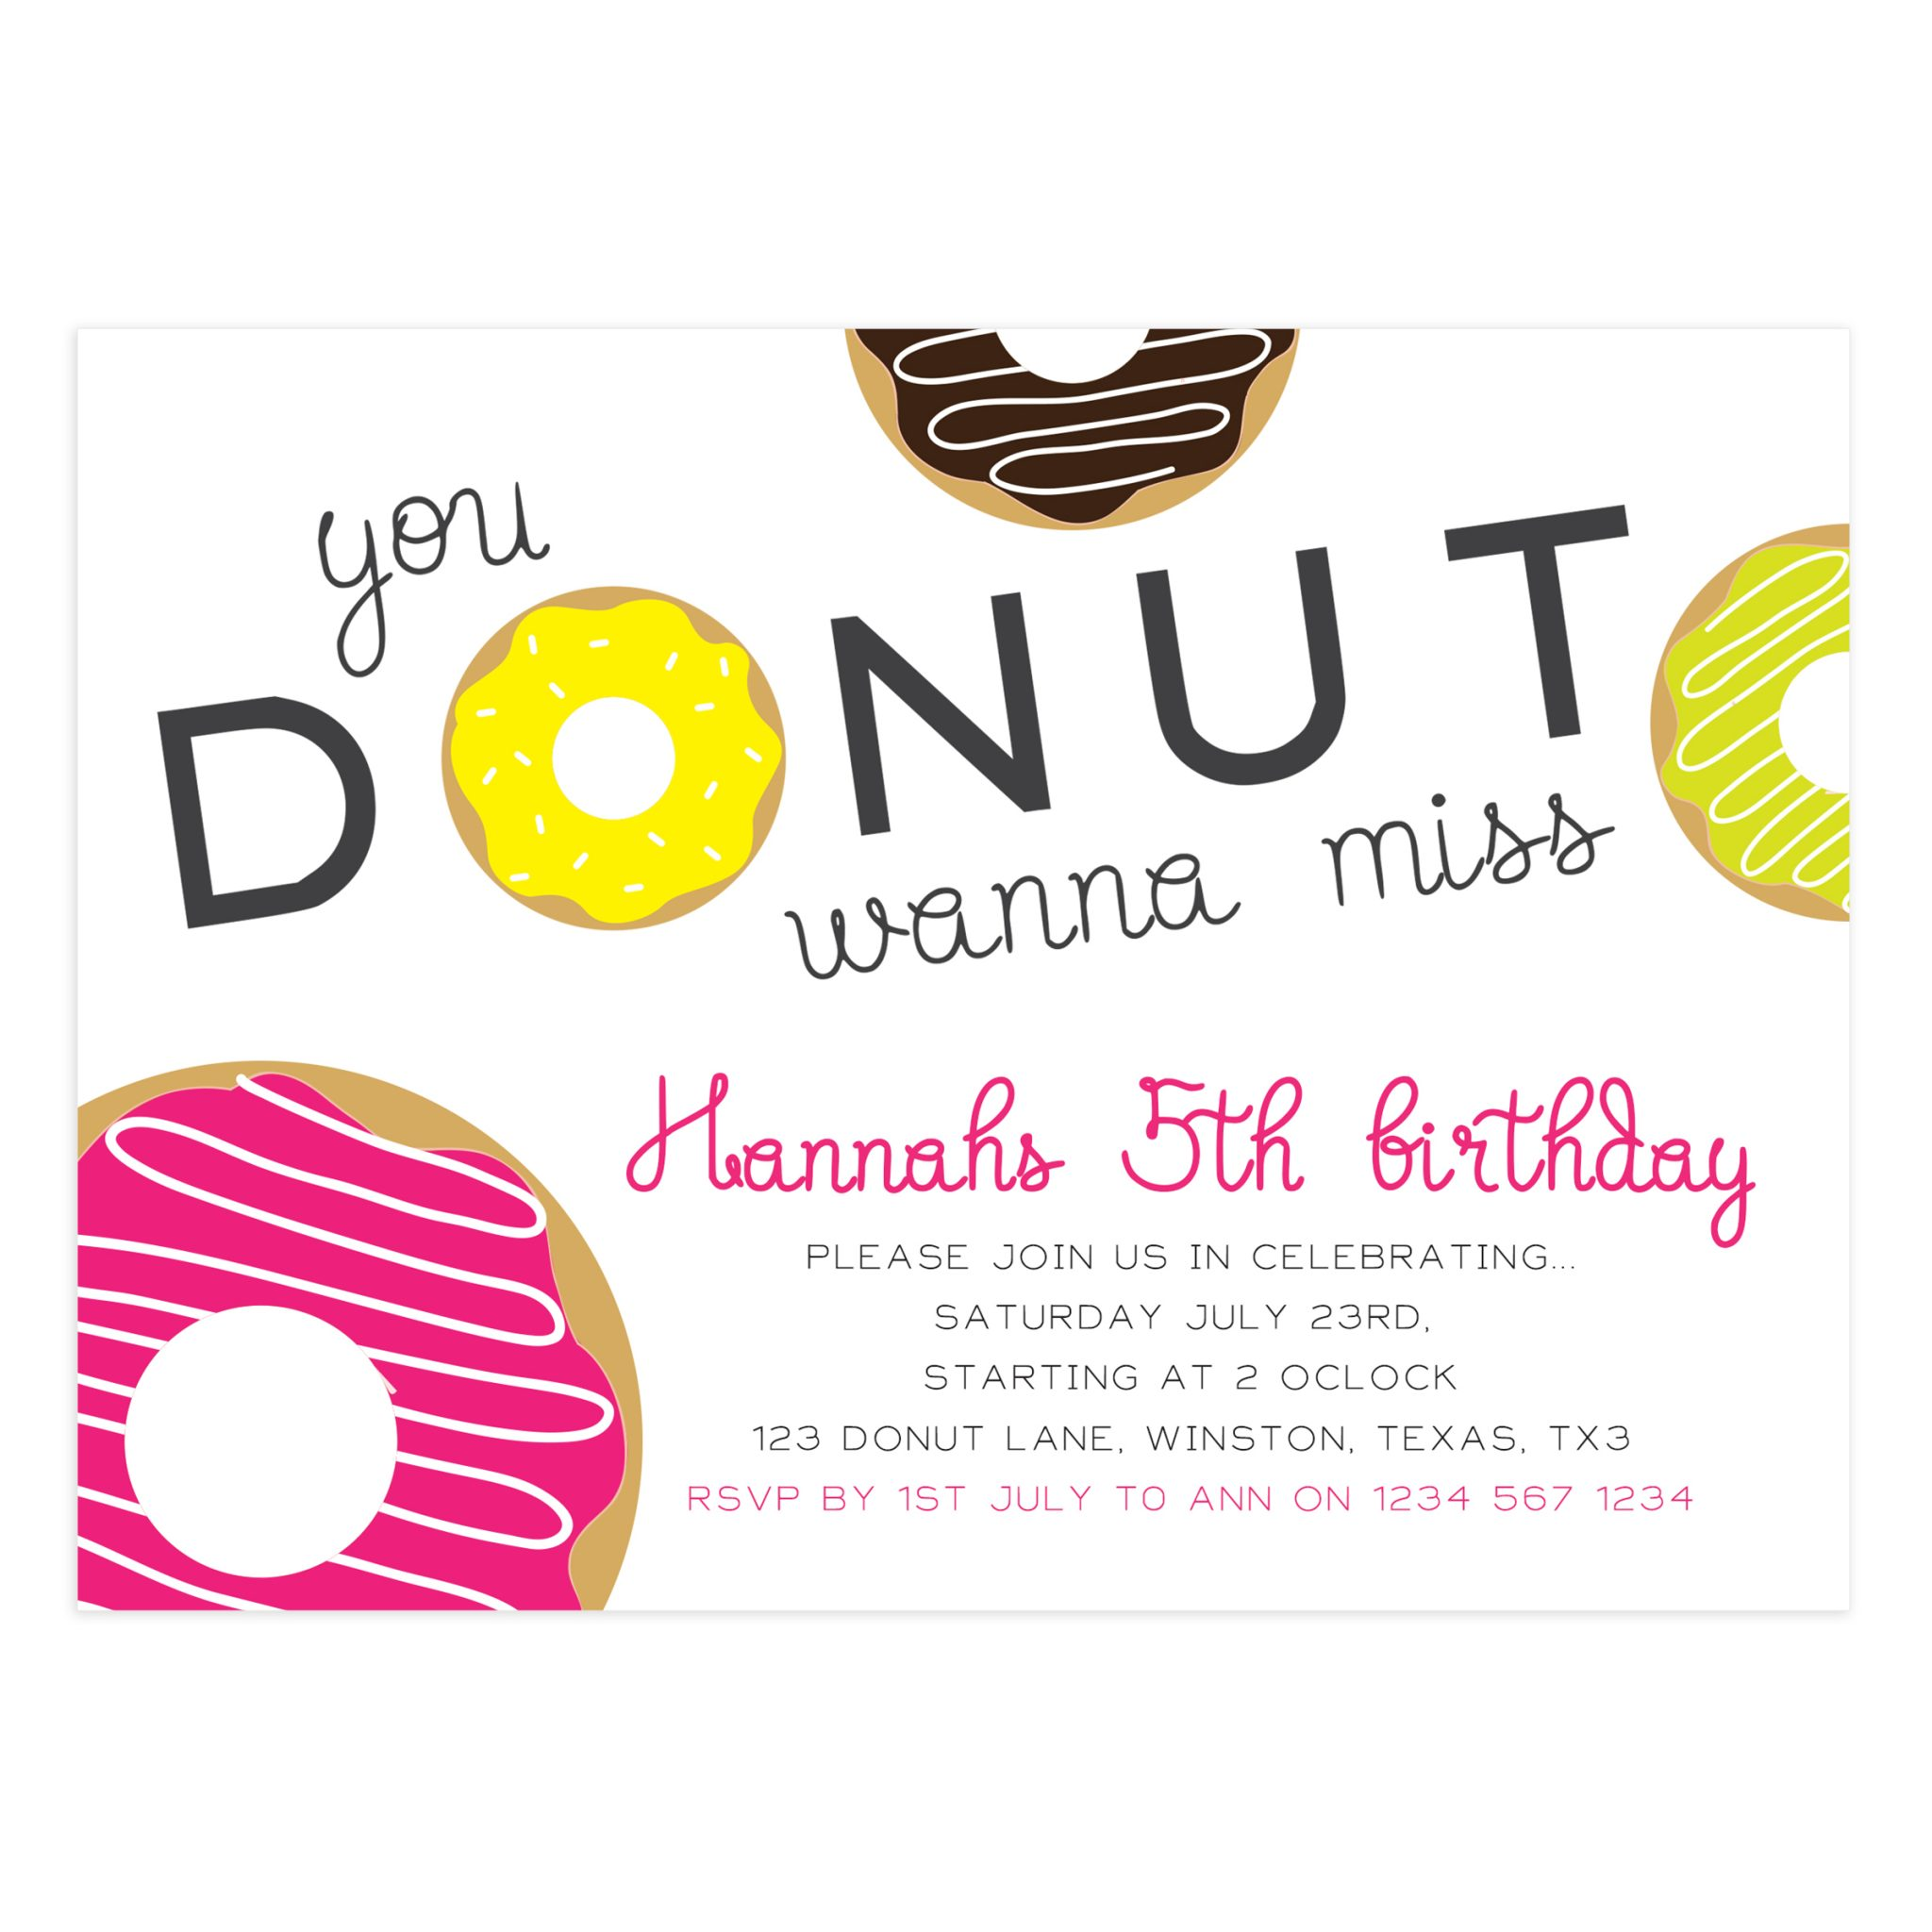 Donut birthday party invitation card mockaroon donut birthday party invitation card filmwisefo